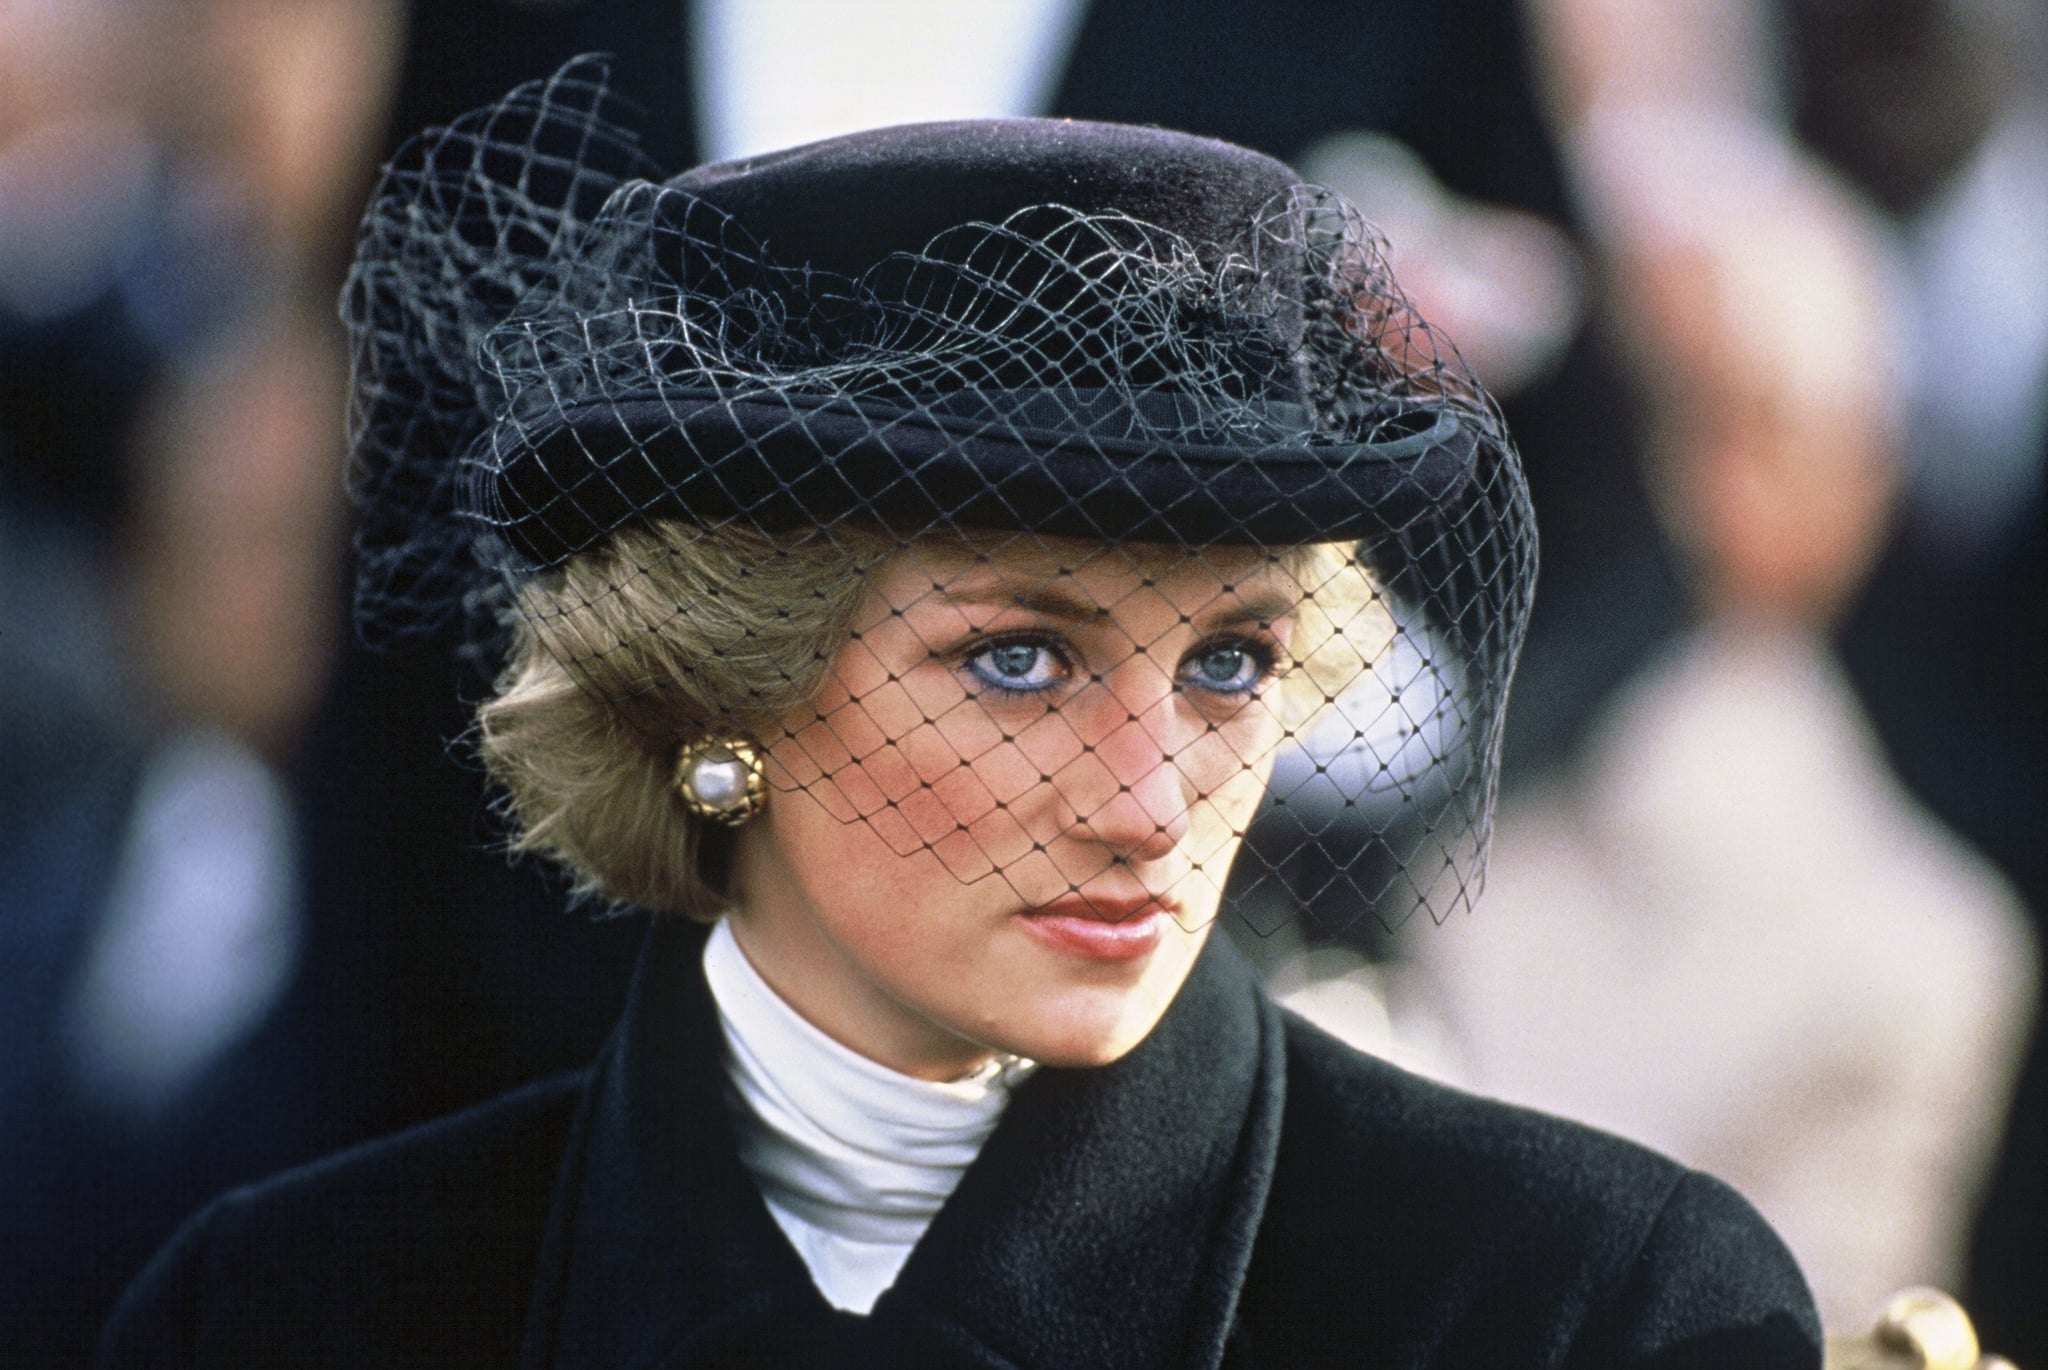 Where is princess diana buried in wales